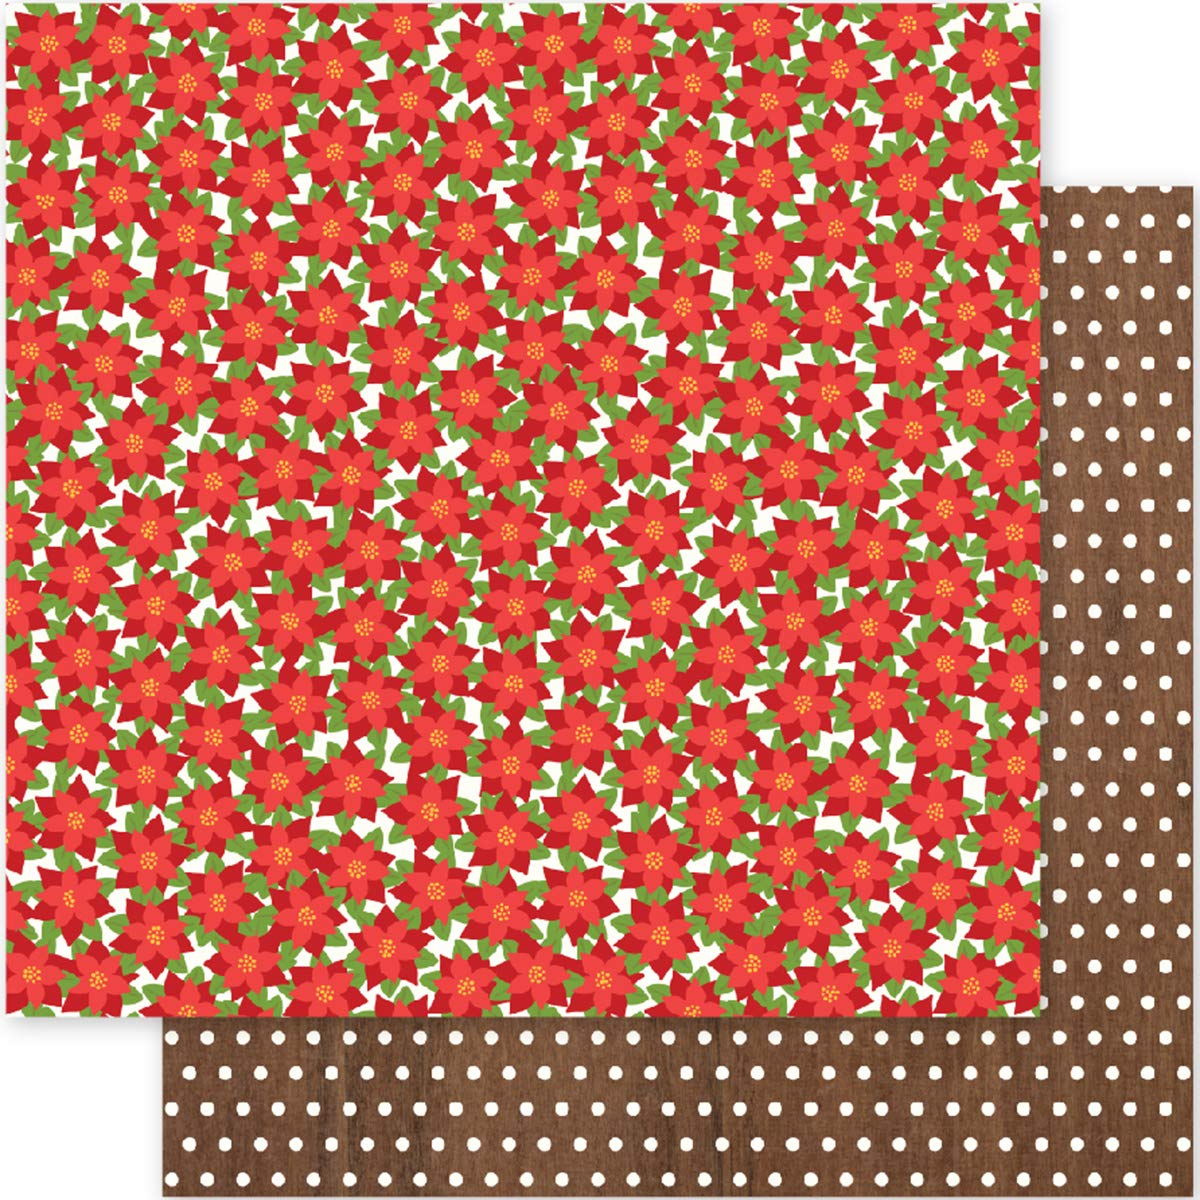 Pebbles Holly Jolly Collection Christmas 12 X 12 Double Sided Paper Posettias (6 Pack)